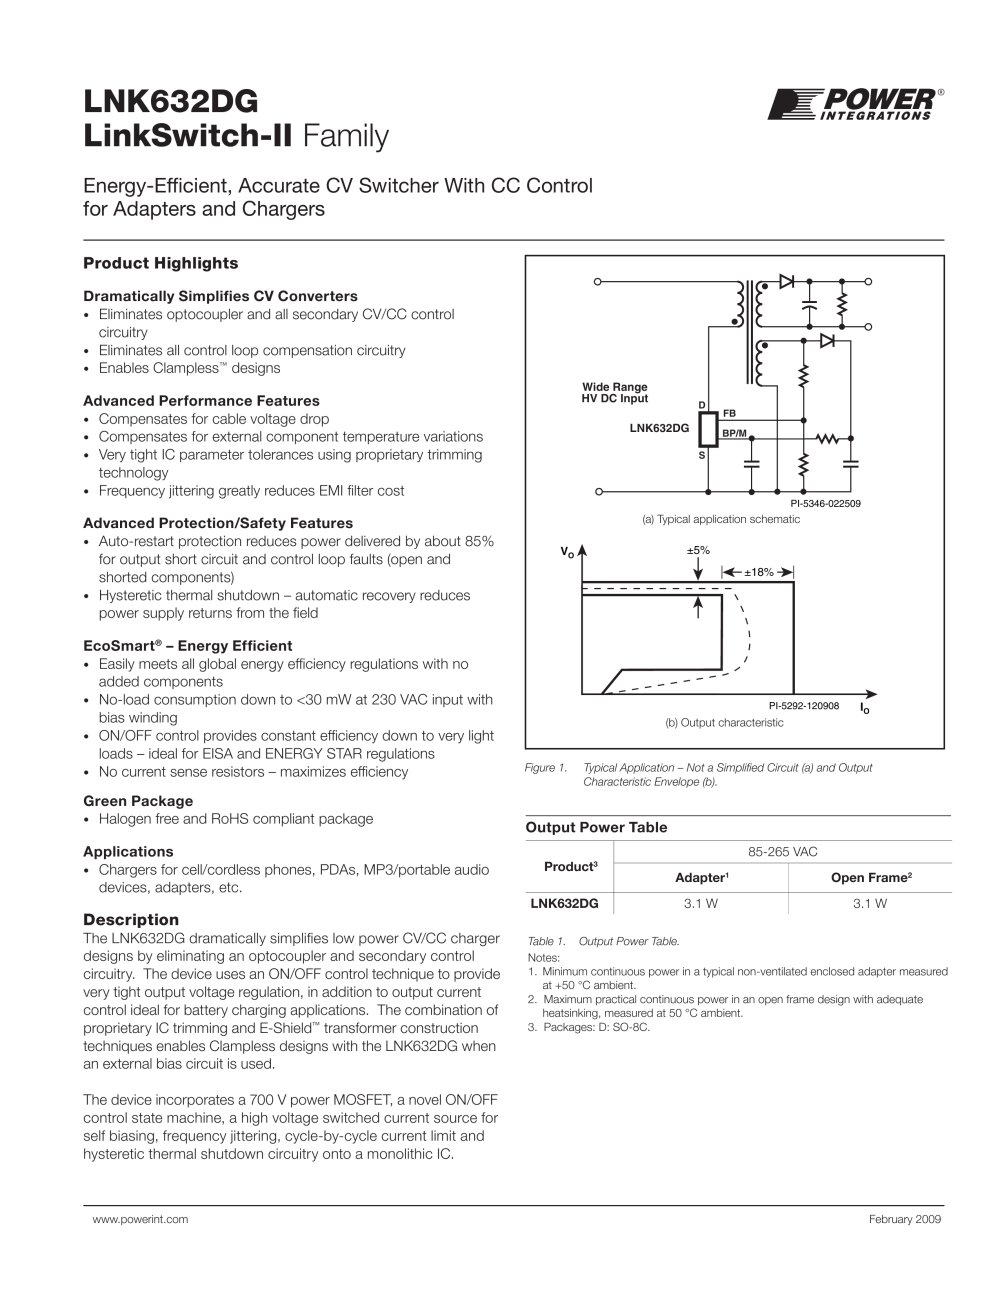 Linkswitch Ii Power Integrations Pdf Catalogue Technical Regulated Supply Application Circuit Diagram Powersupply 1 10 Pages